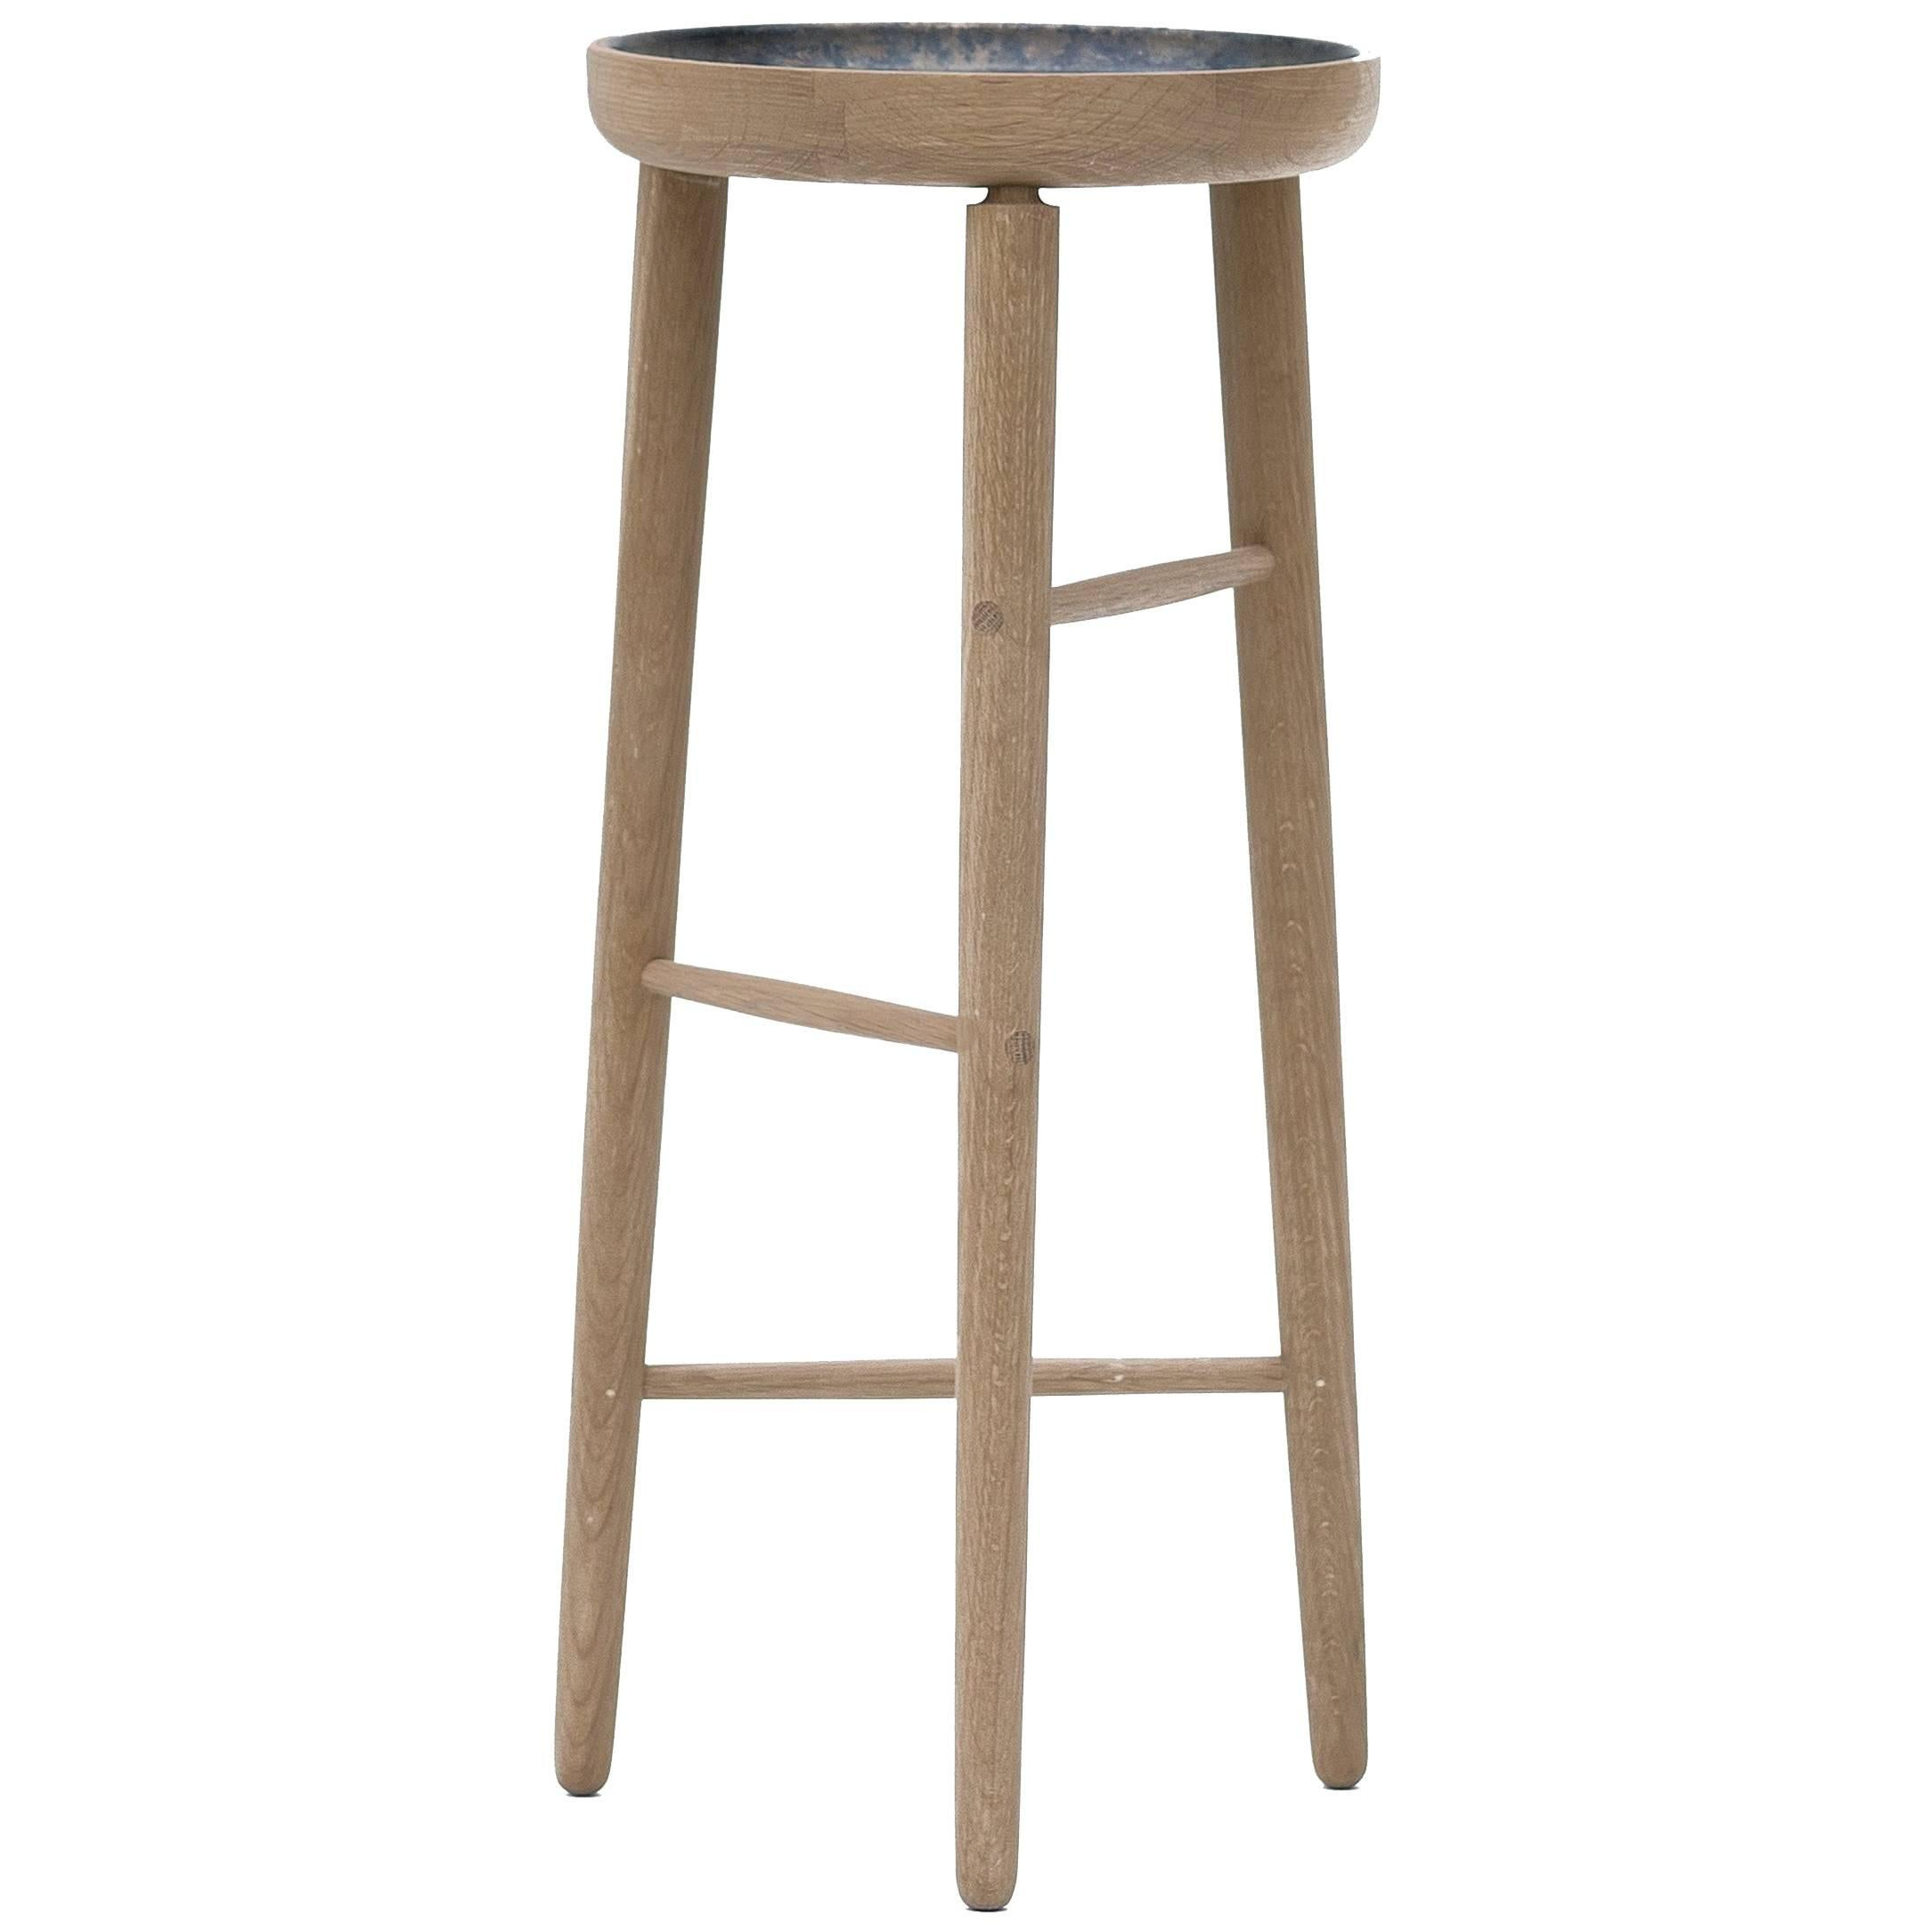 Baré Tall Plant Stand, Solid White Oak Dowel Frame with Cast Bronze Tray